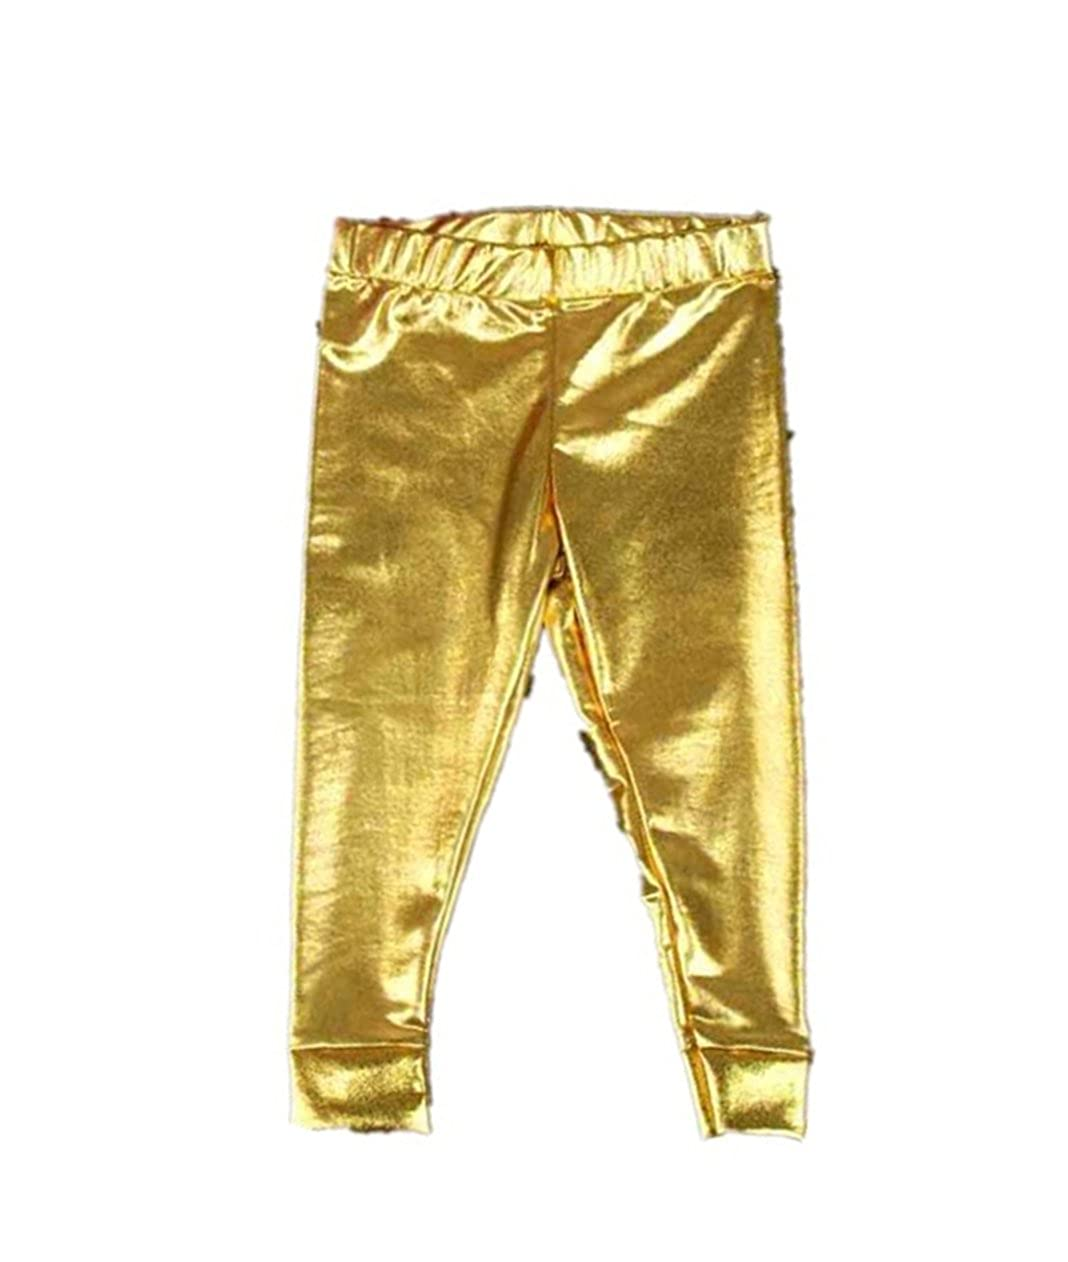 Kingko® Baby Girls Boys Fashion Leggings Faux Leather Gilding Full Length Skinny Pants Trousers KINY-XP6650